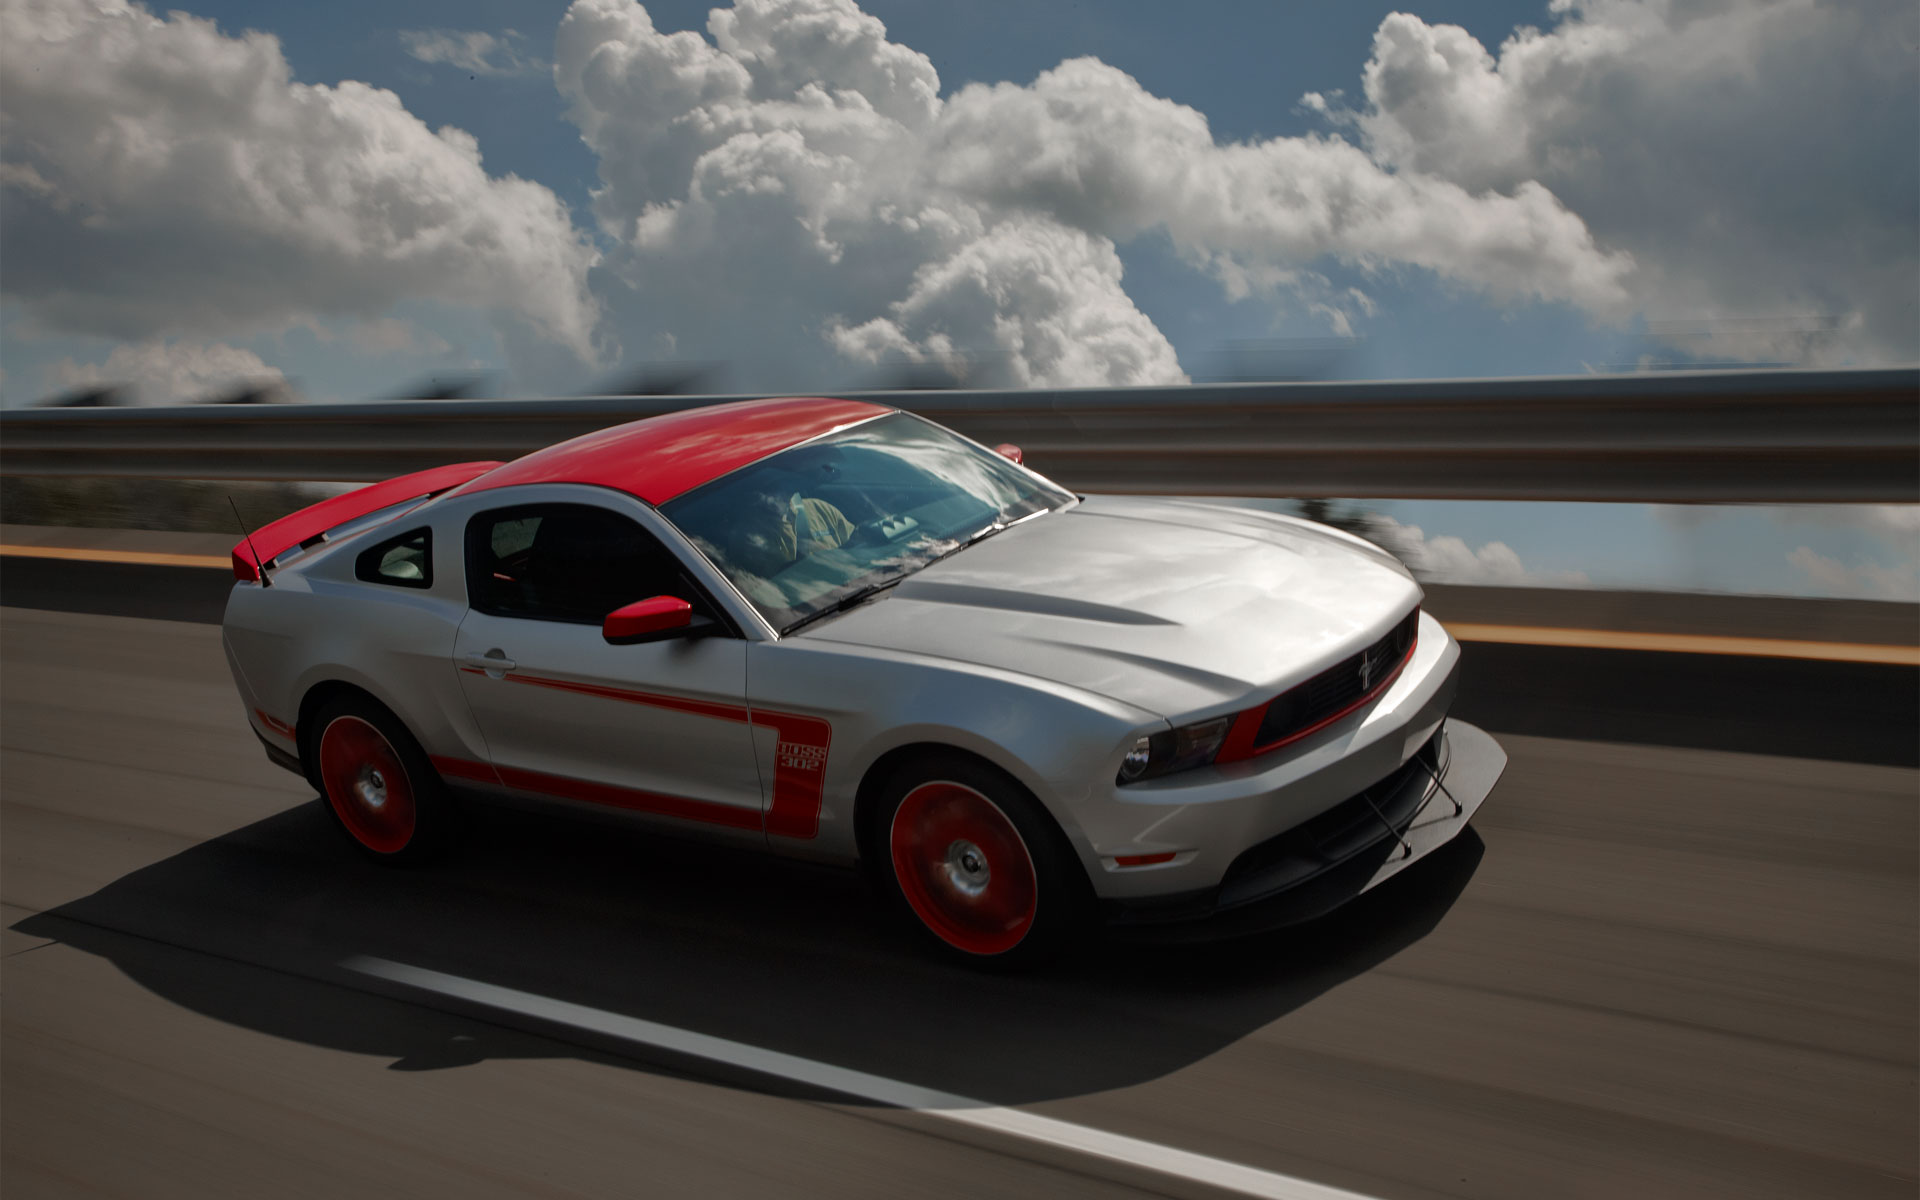 Top gear muscle cars episode released feb 21 2012 iakobou ford mustang boss 302 publicscrutiny Image collections